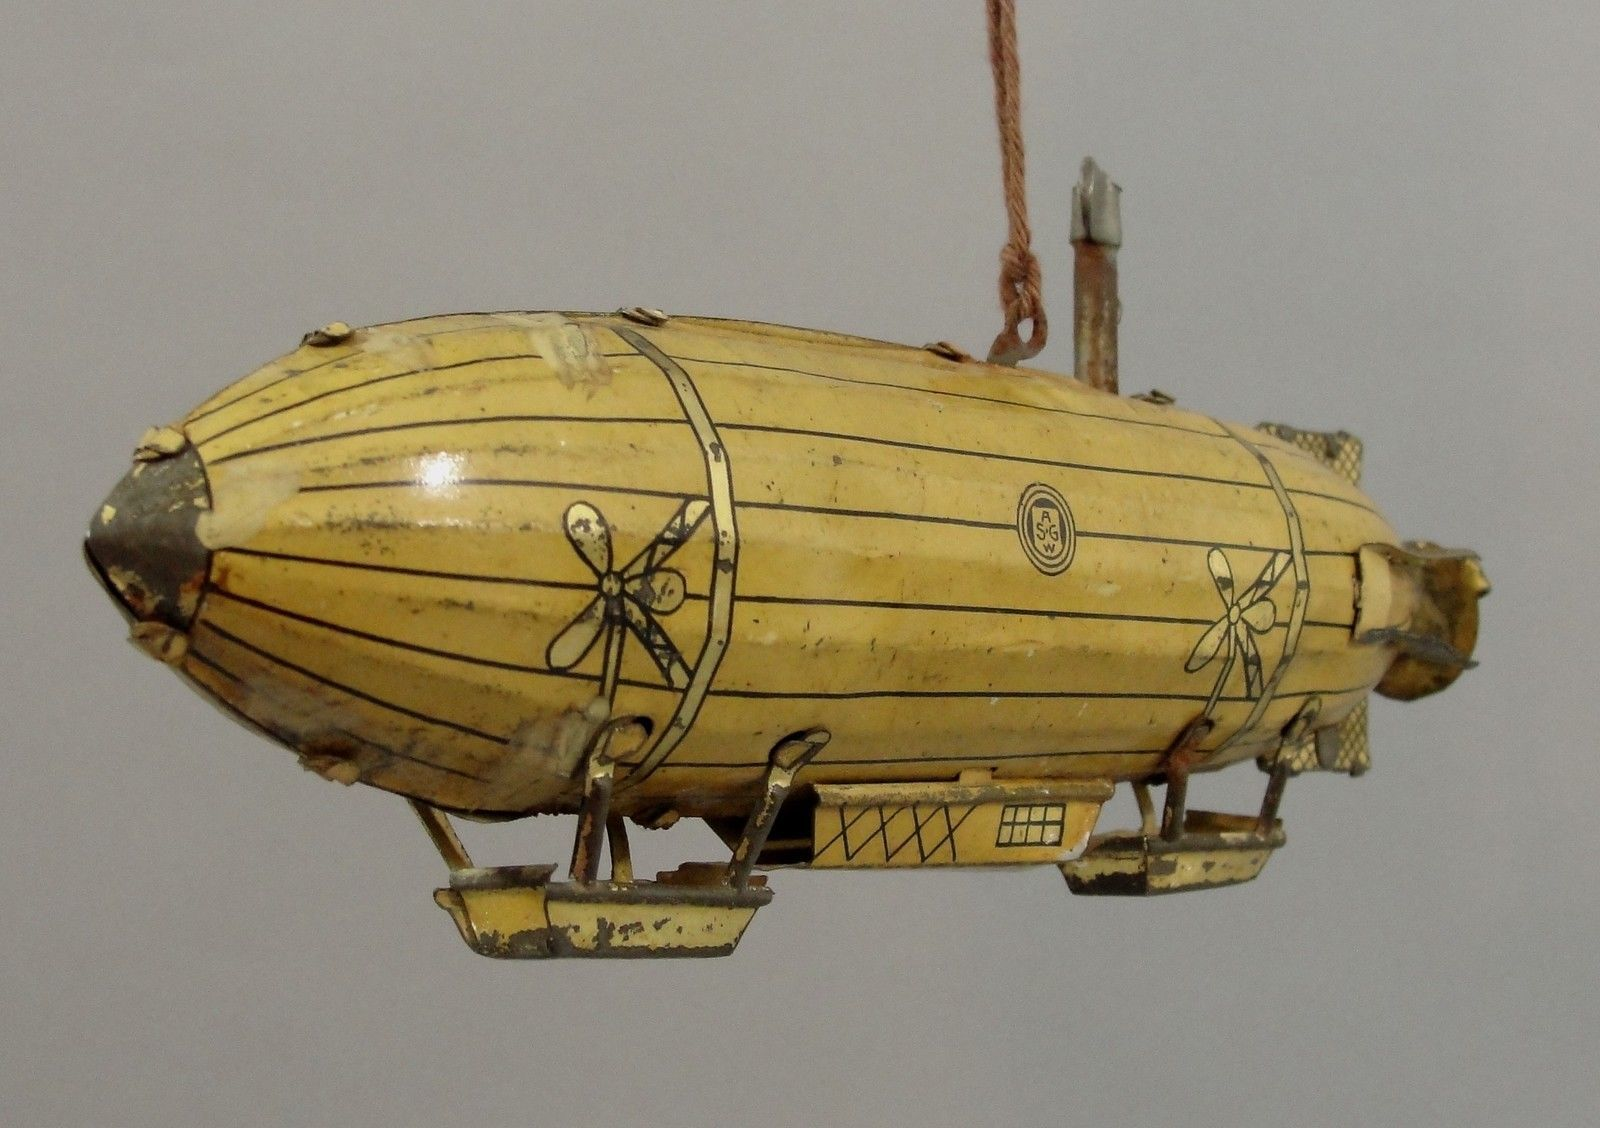 RARE Antique ASGW German Tin-Litho Wind-up Zeppelin Dirigible Blimp Airship Toy